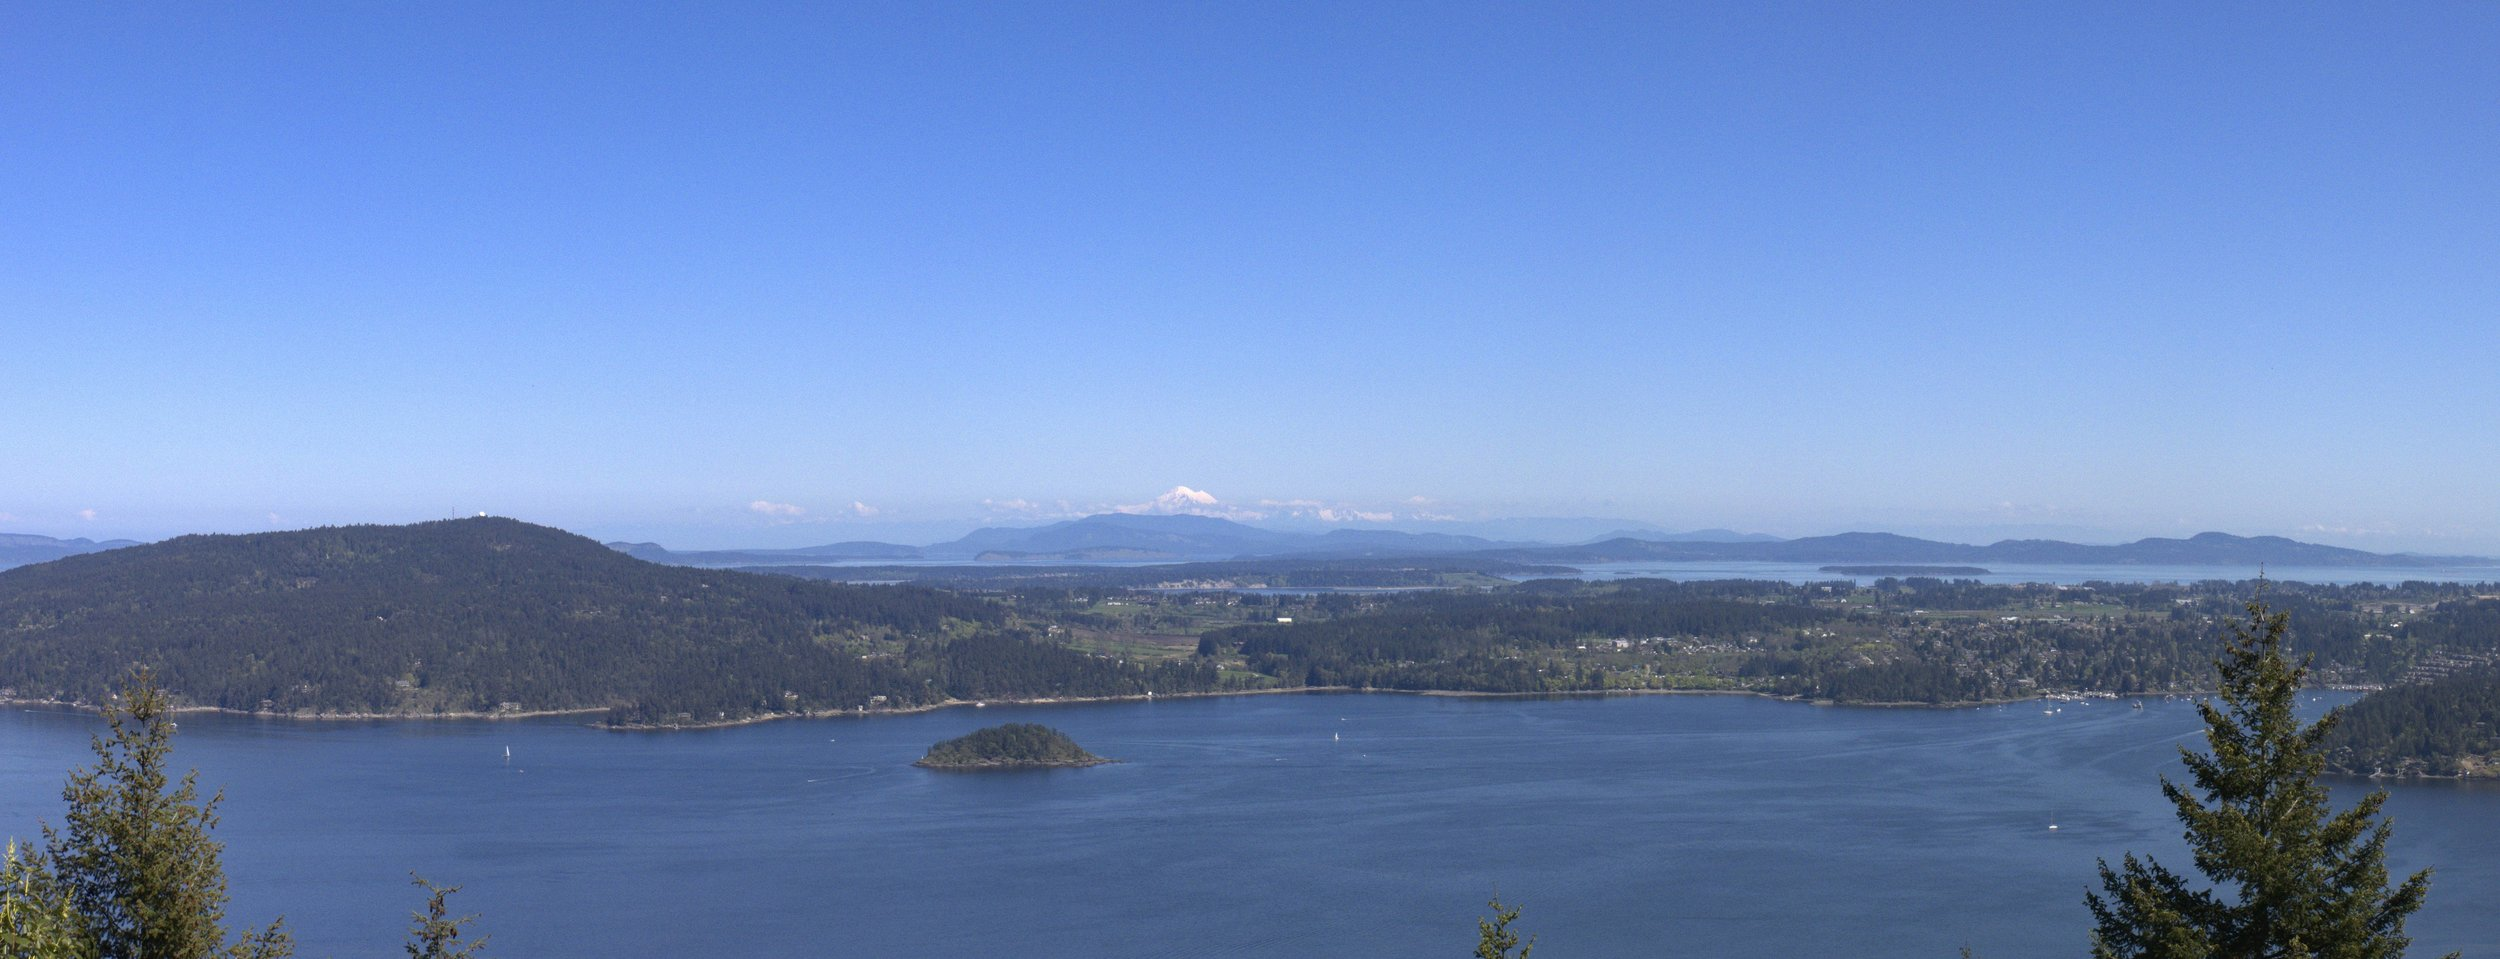 Saanich Peninsula (from Malahat)